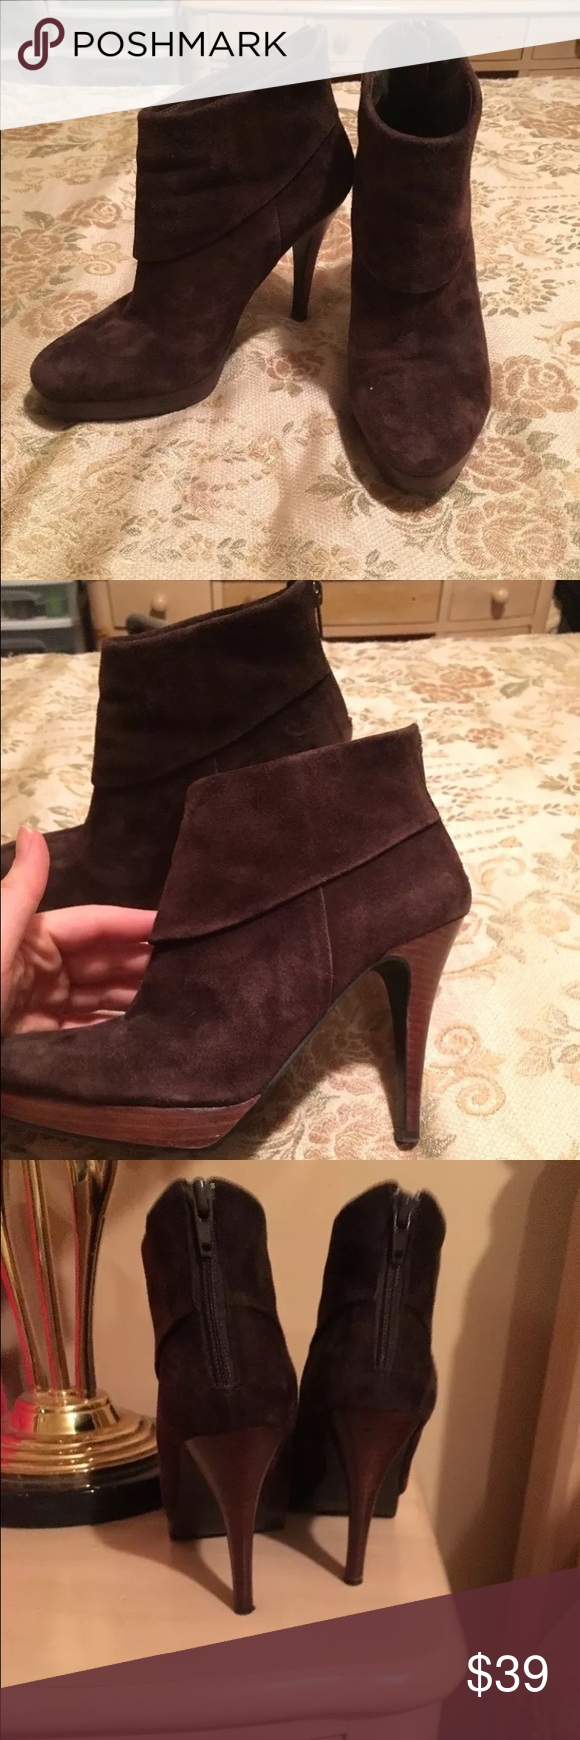 Steve Madden Brown Suede Ankle Boots 7.5 These gorgeous brown suede Steve Madden shoes are in great condition. There are a few scuffs on the suede and one stain on the front of the left shoe that is the size of a pin hole-- see photo. Please ask questions before purchasing Steve Madden Shoes Ankle Boots & Booties